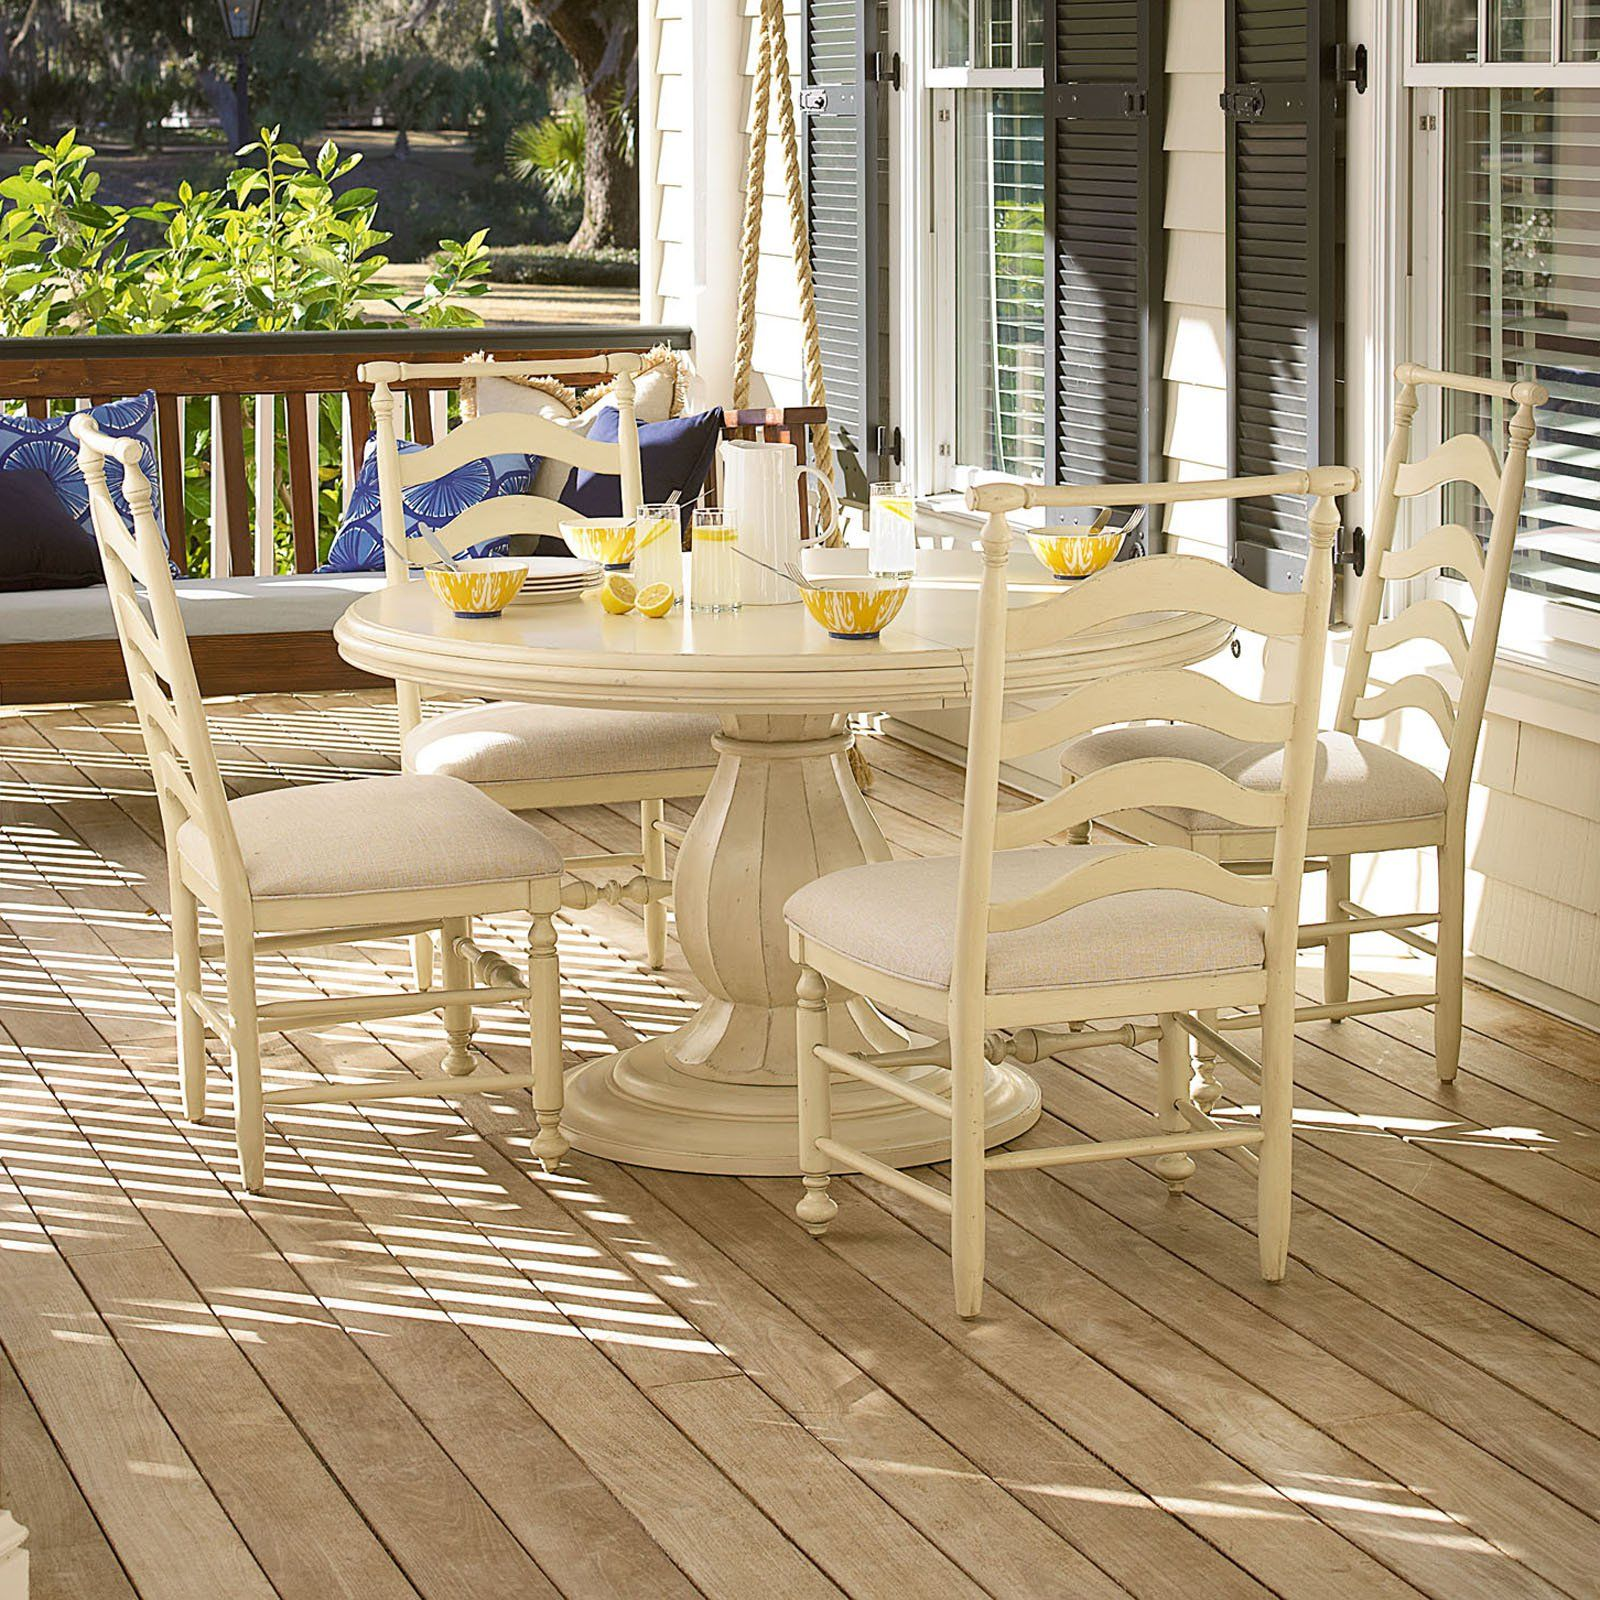 paula deen river house 5 piece round dining table set - river boat, Esstisch ideennn